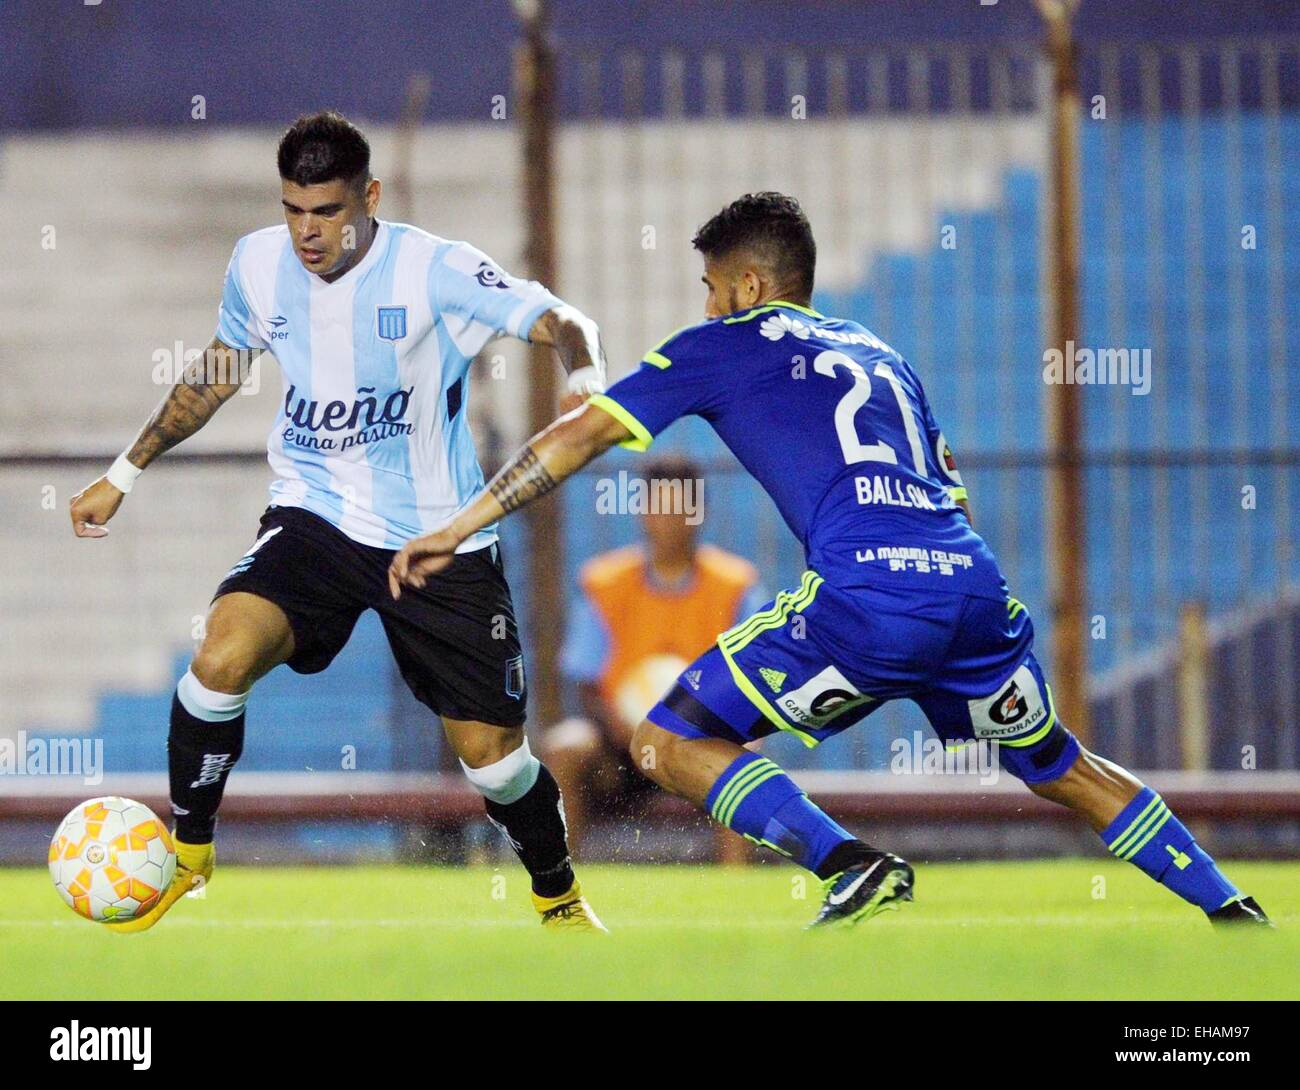 Buenos Aires, Argentina. 10th Mar, 2015. Racing Club's Gustavo Bou (L) of Argentina vies for the ball with Sporting - Stock Image